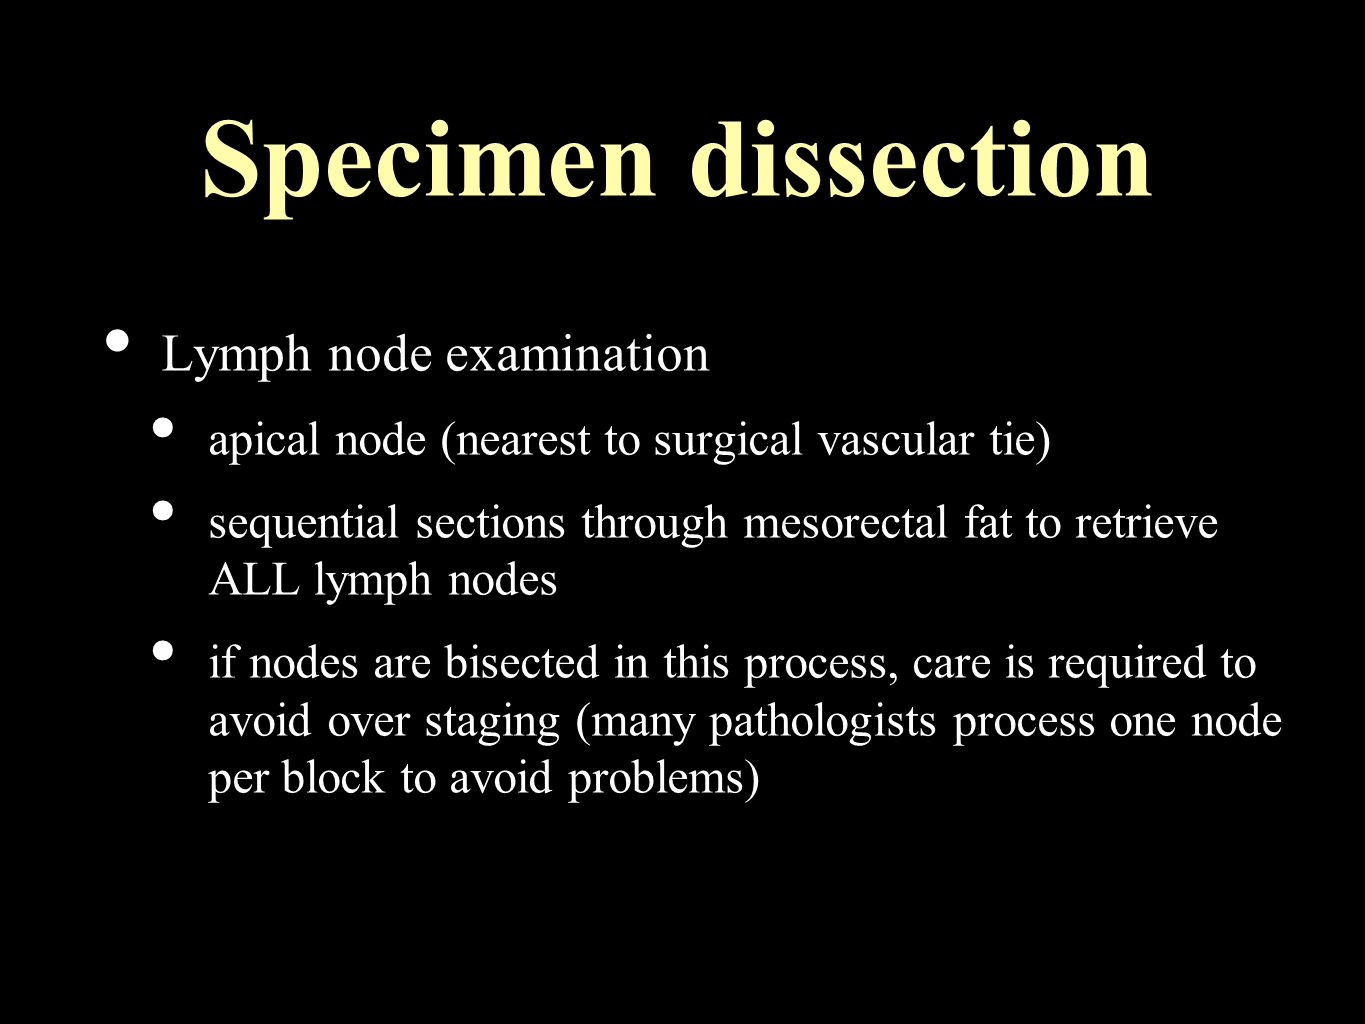 Specimen dissection Lymph node examination apical node (nearest to surgical vascular tie) sequential sections through mesorectal fat to retrieve ALL lymph nodes if nodes are bisected in this process, care is required to avoid over staging (many pathologists process one node per block to avoid problems)